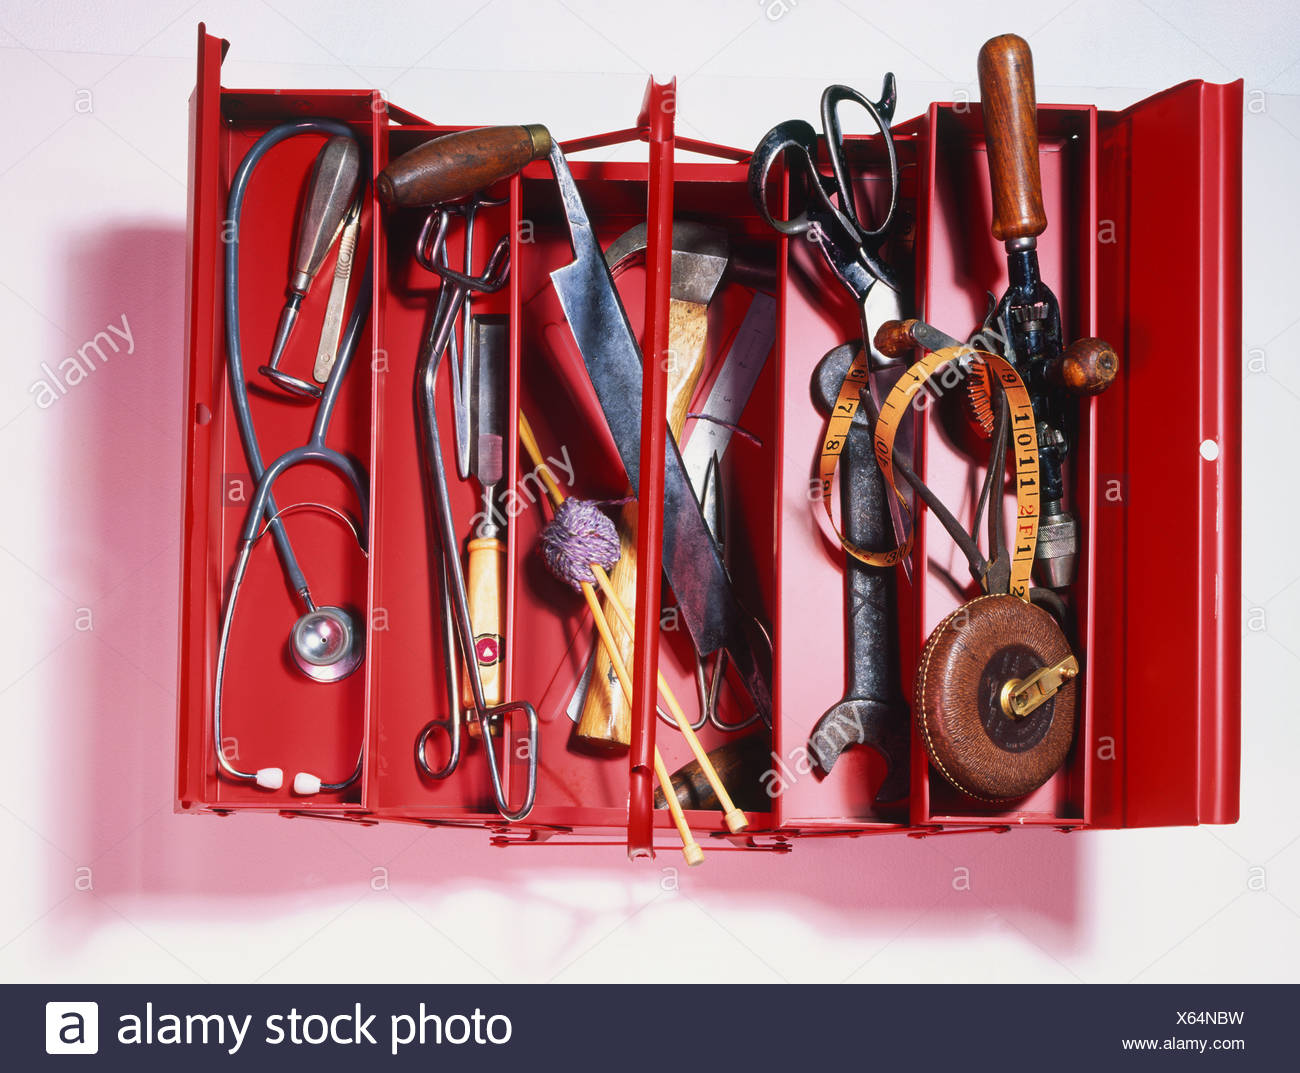 Red toolbox filled with assorted tools and other objects, opened out to show spanner - Stock Image